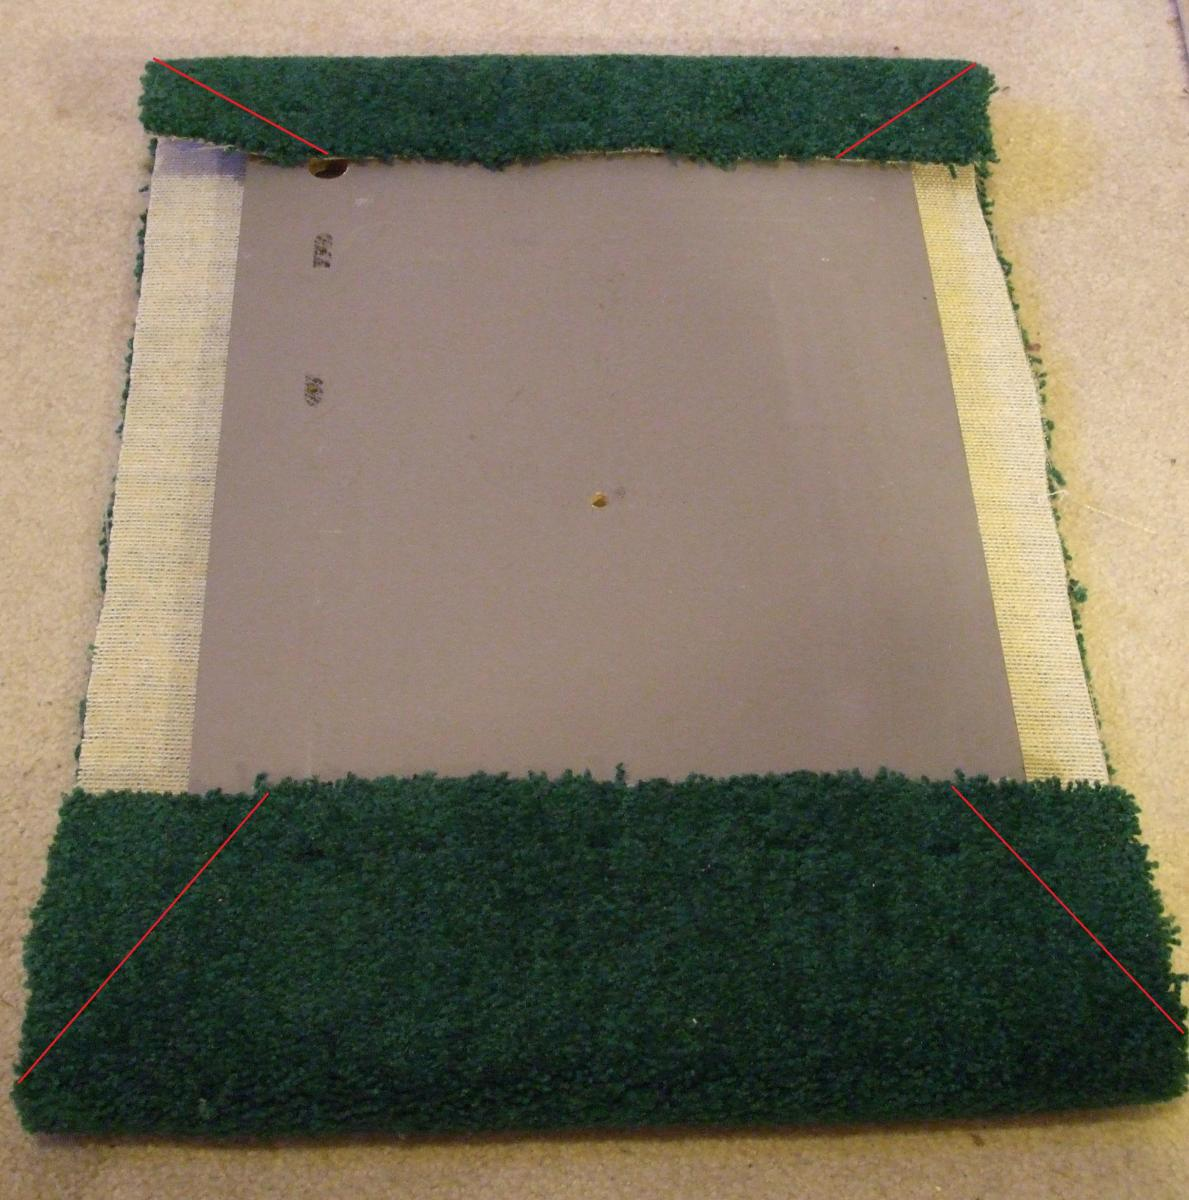 In this photo, the side carpet is much too narrow.  It was hard to fold it up and over the board and have enough to staple into the board.